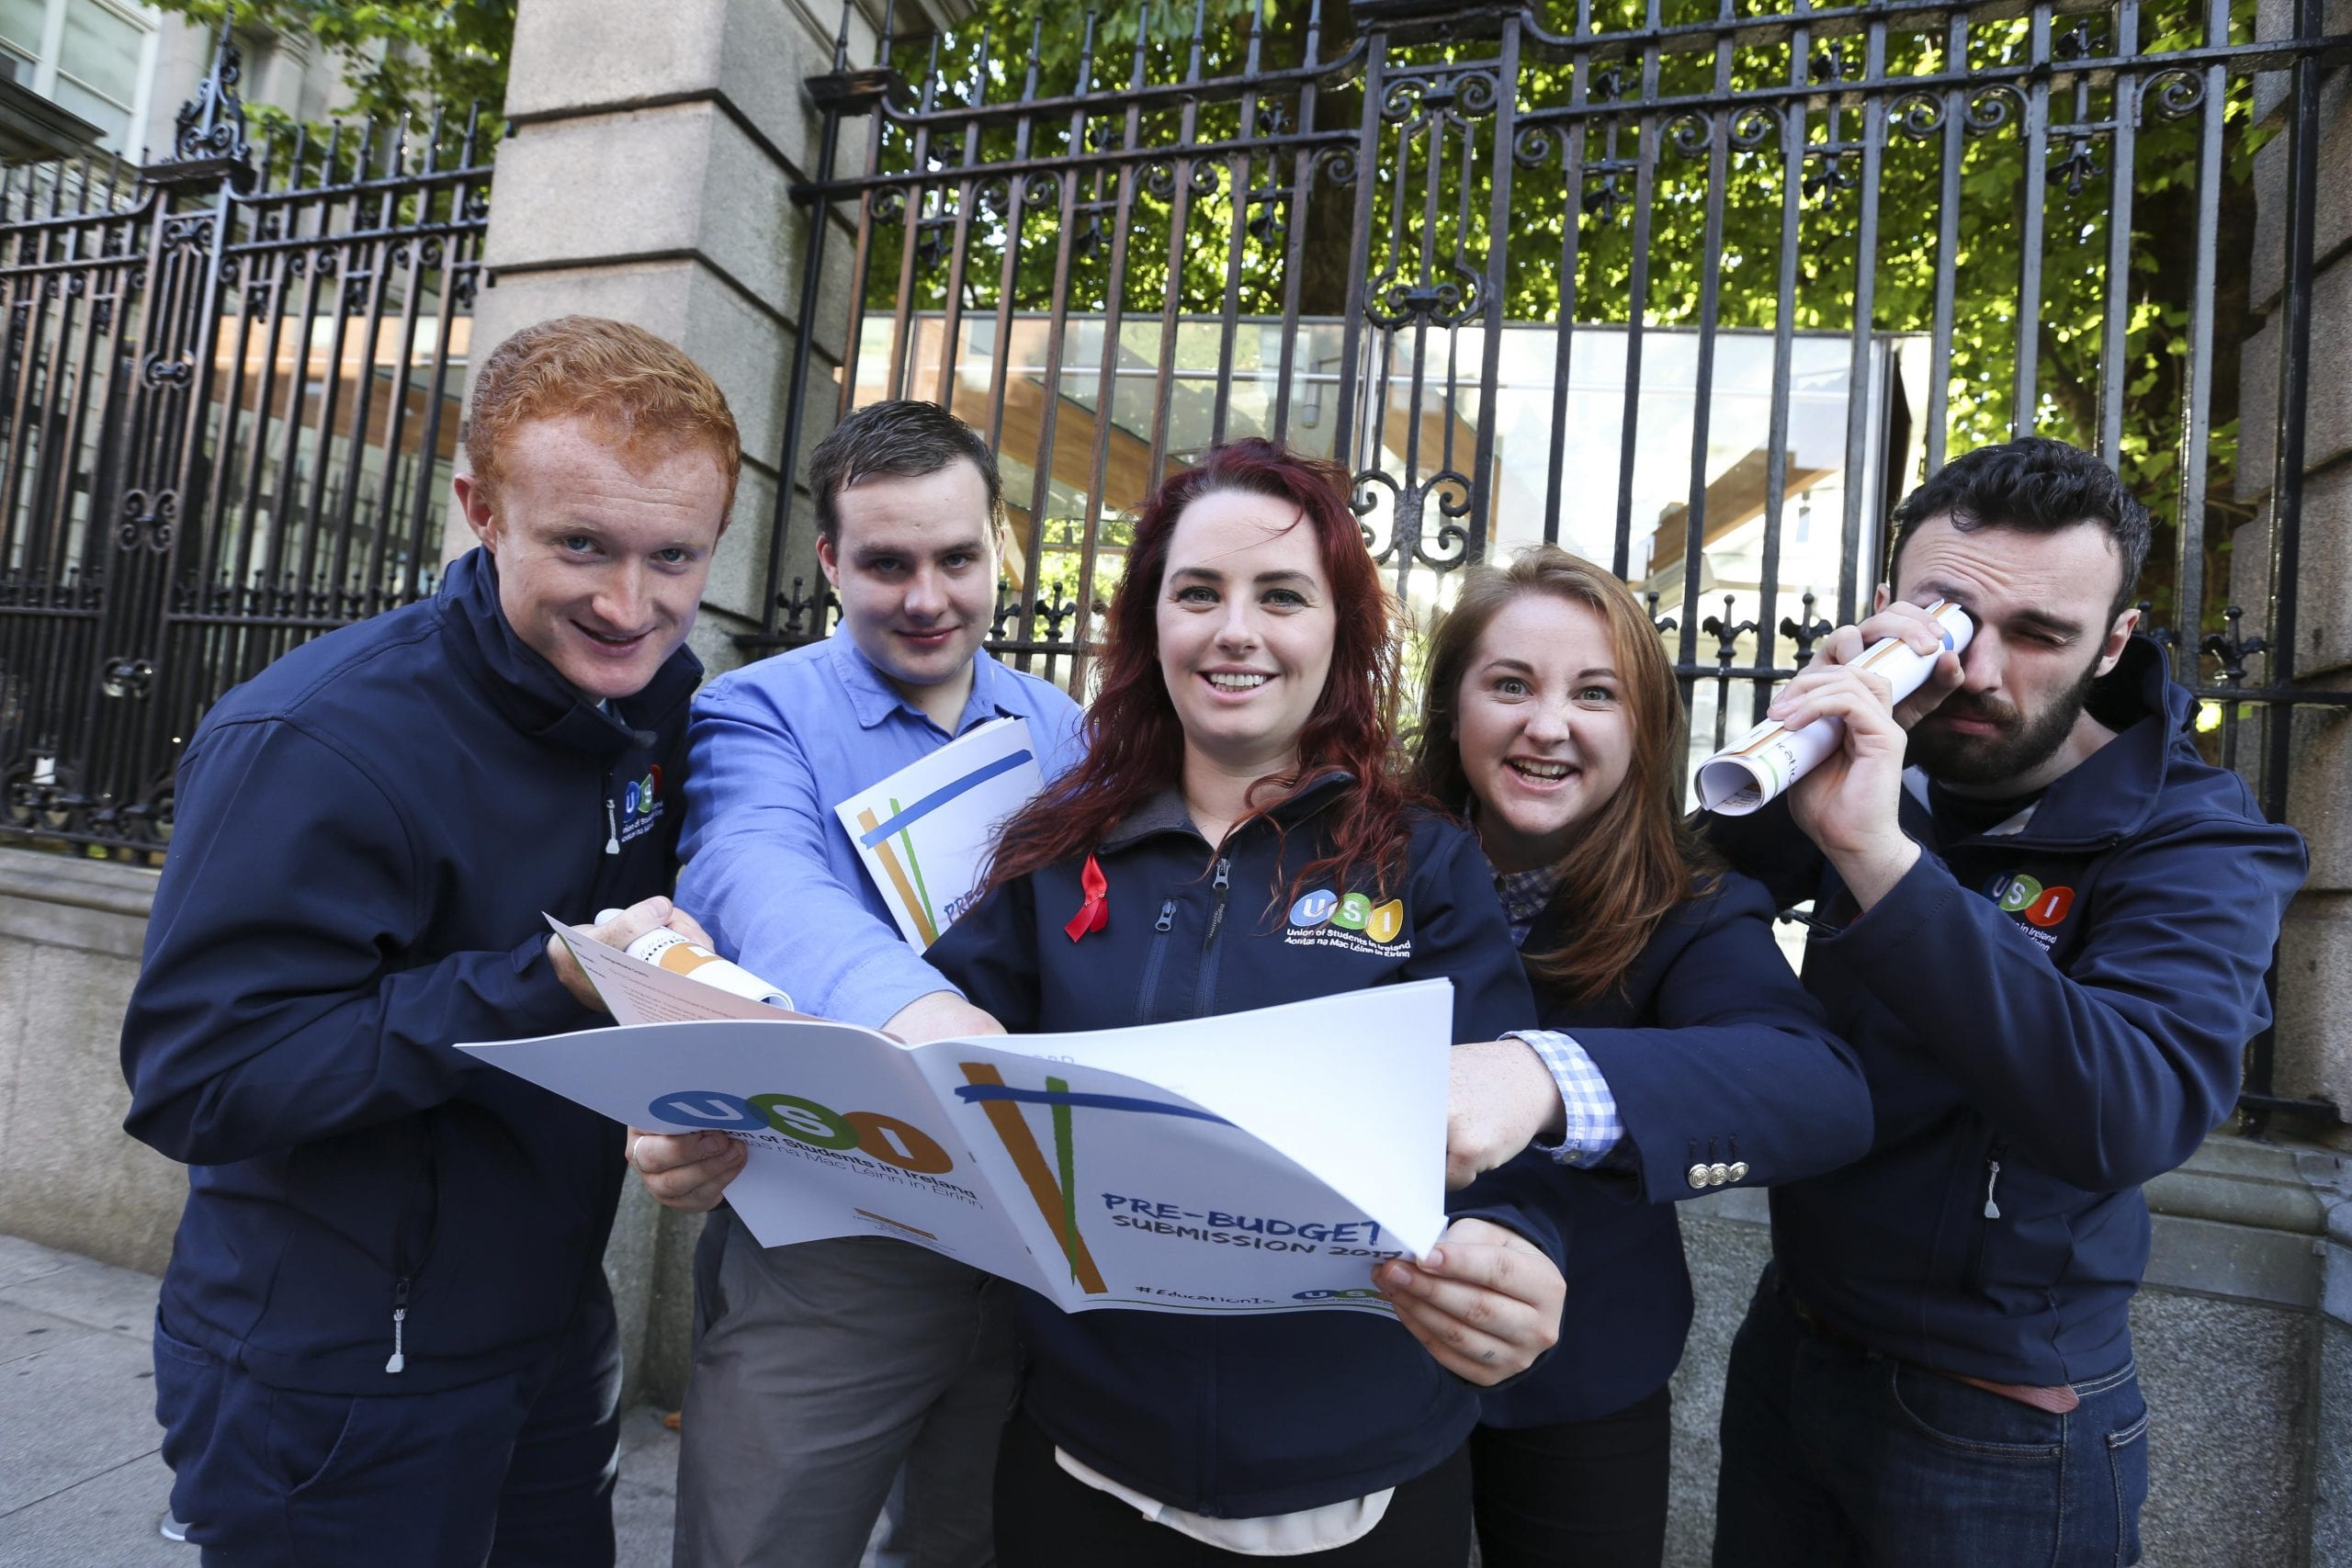 USI Launches Student Pre-Budget Submission